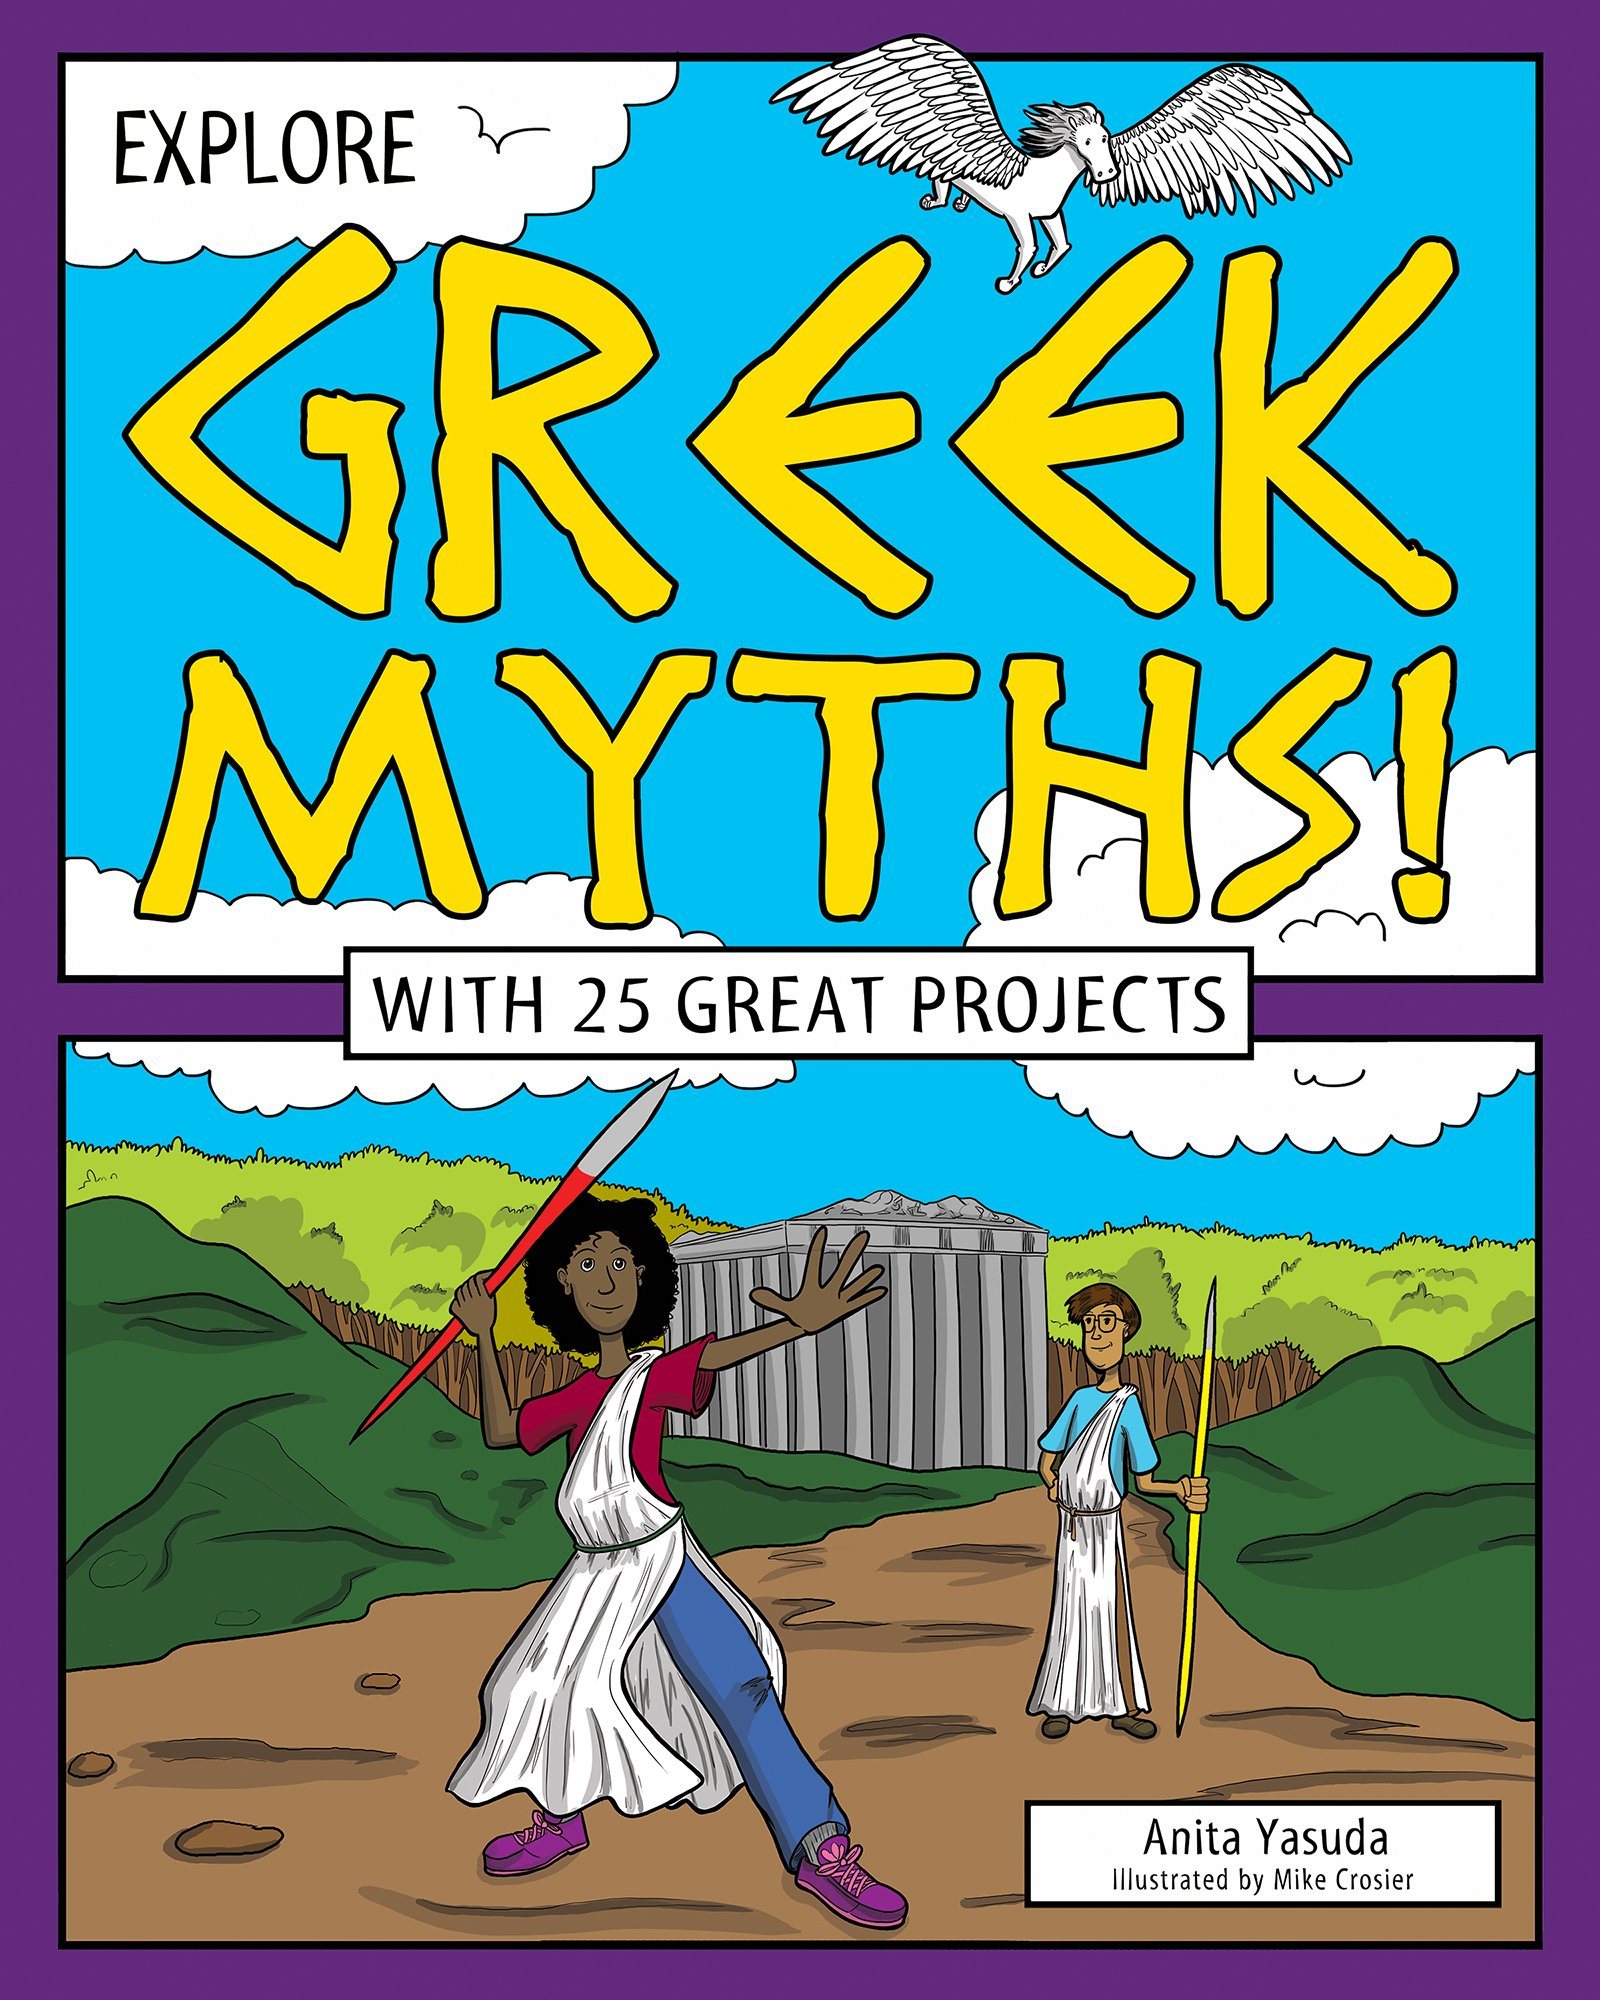 Read Online Explore Greek Myths!: With 25 Great Projects (Explore Your World) PDF